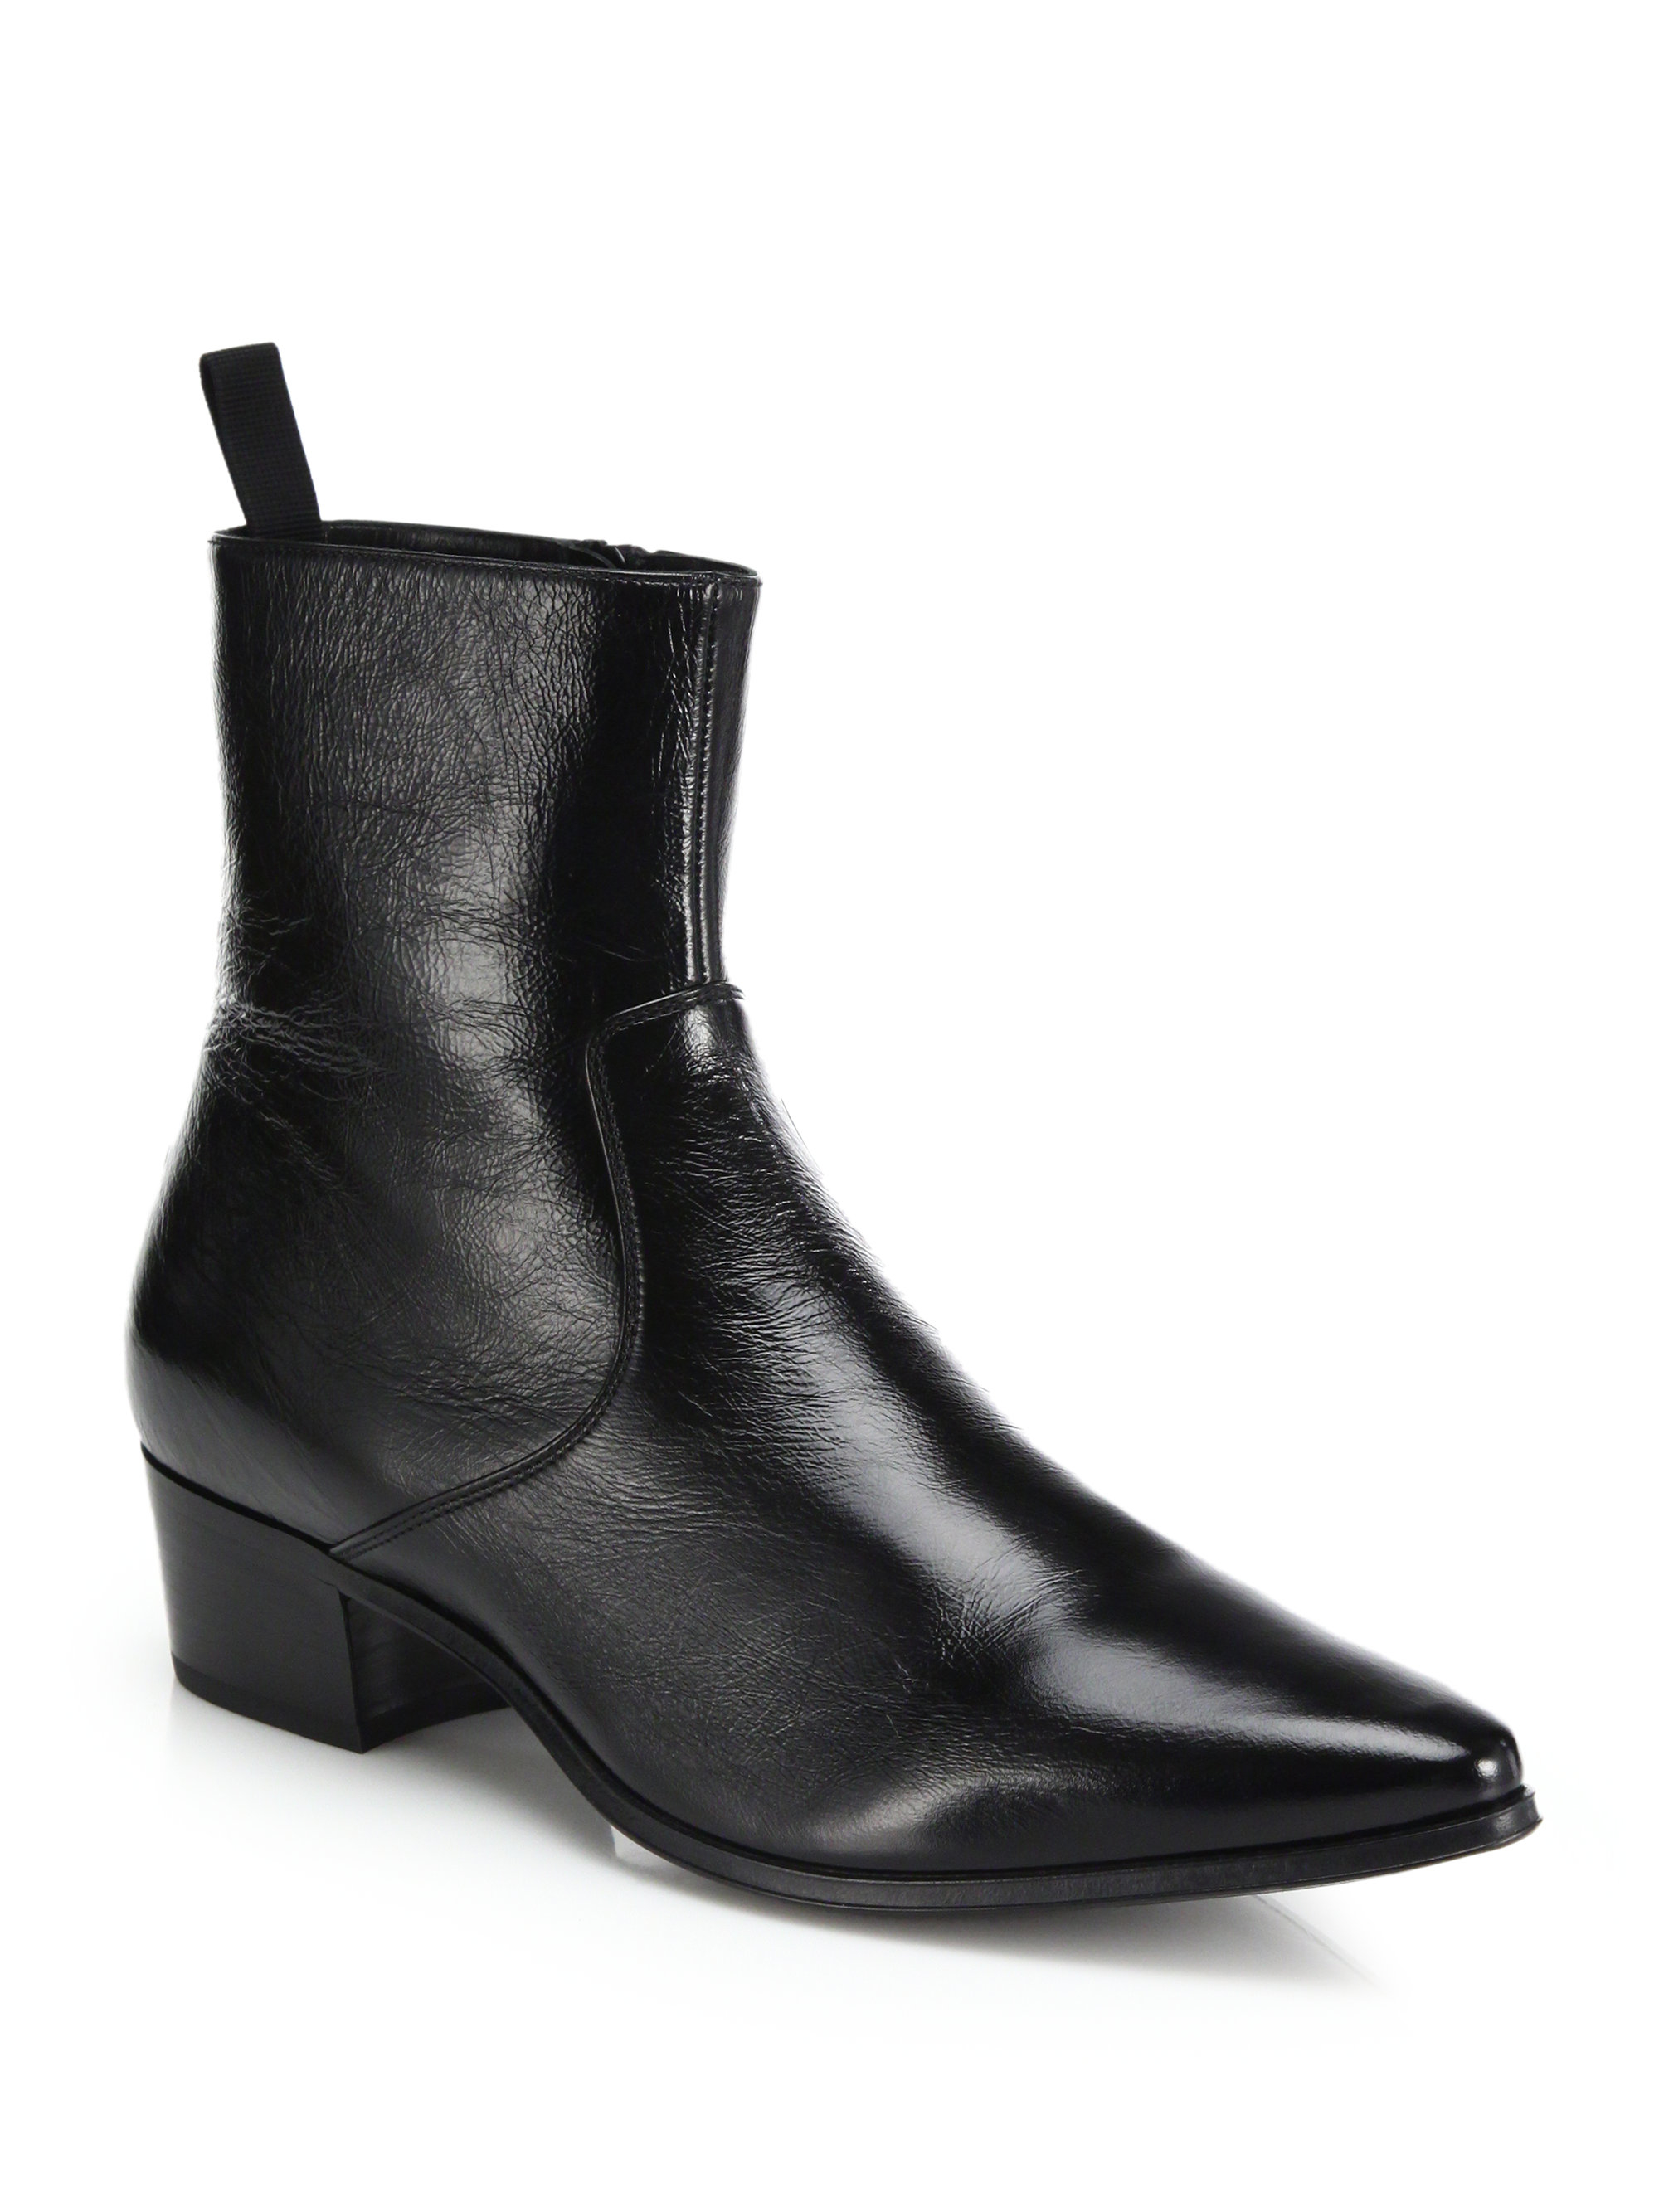 Black Travis Boots Saint Laurent Cheap Fake Many Kinds Of Cheap Online Purchase Online pgbfhm